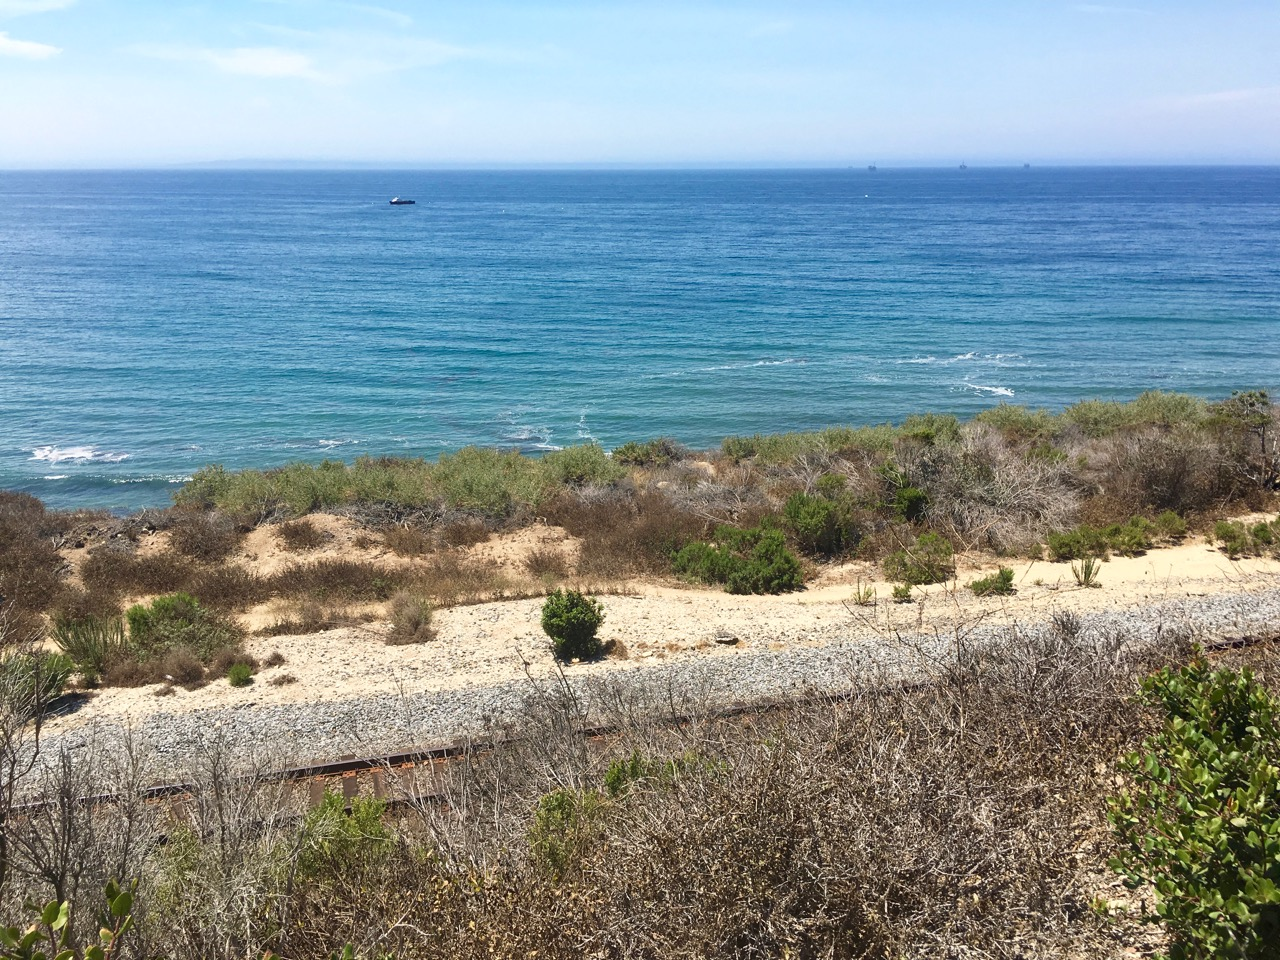 Carpinteria Bluffs Trail – Carpinteria, California